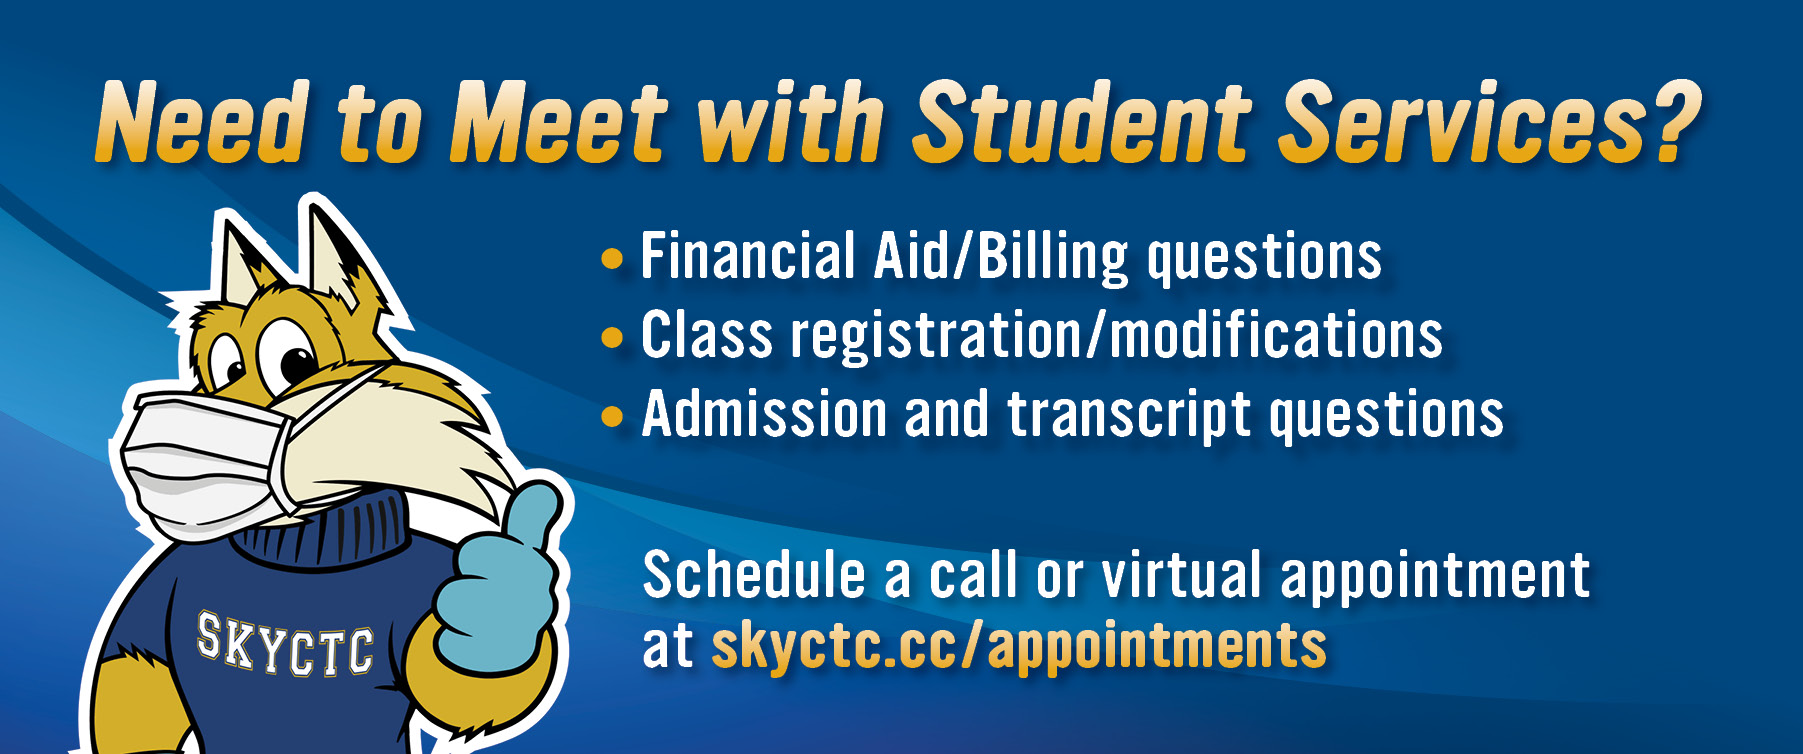 Need to Meet with Student Services? Financial Aid/Billing, Class registration/modifications, admission and transcript questions.  Schedule a call or in-person appointment at http://skyctc.cc/appointments.